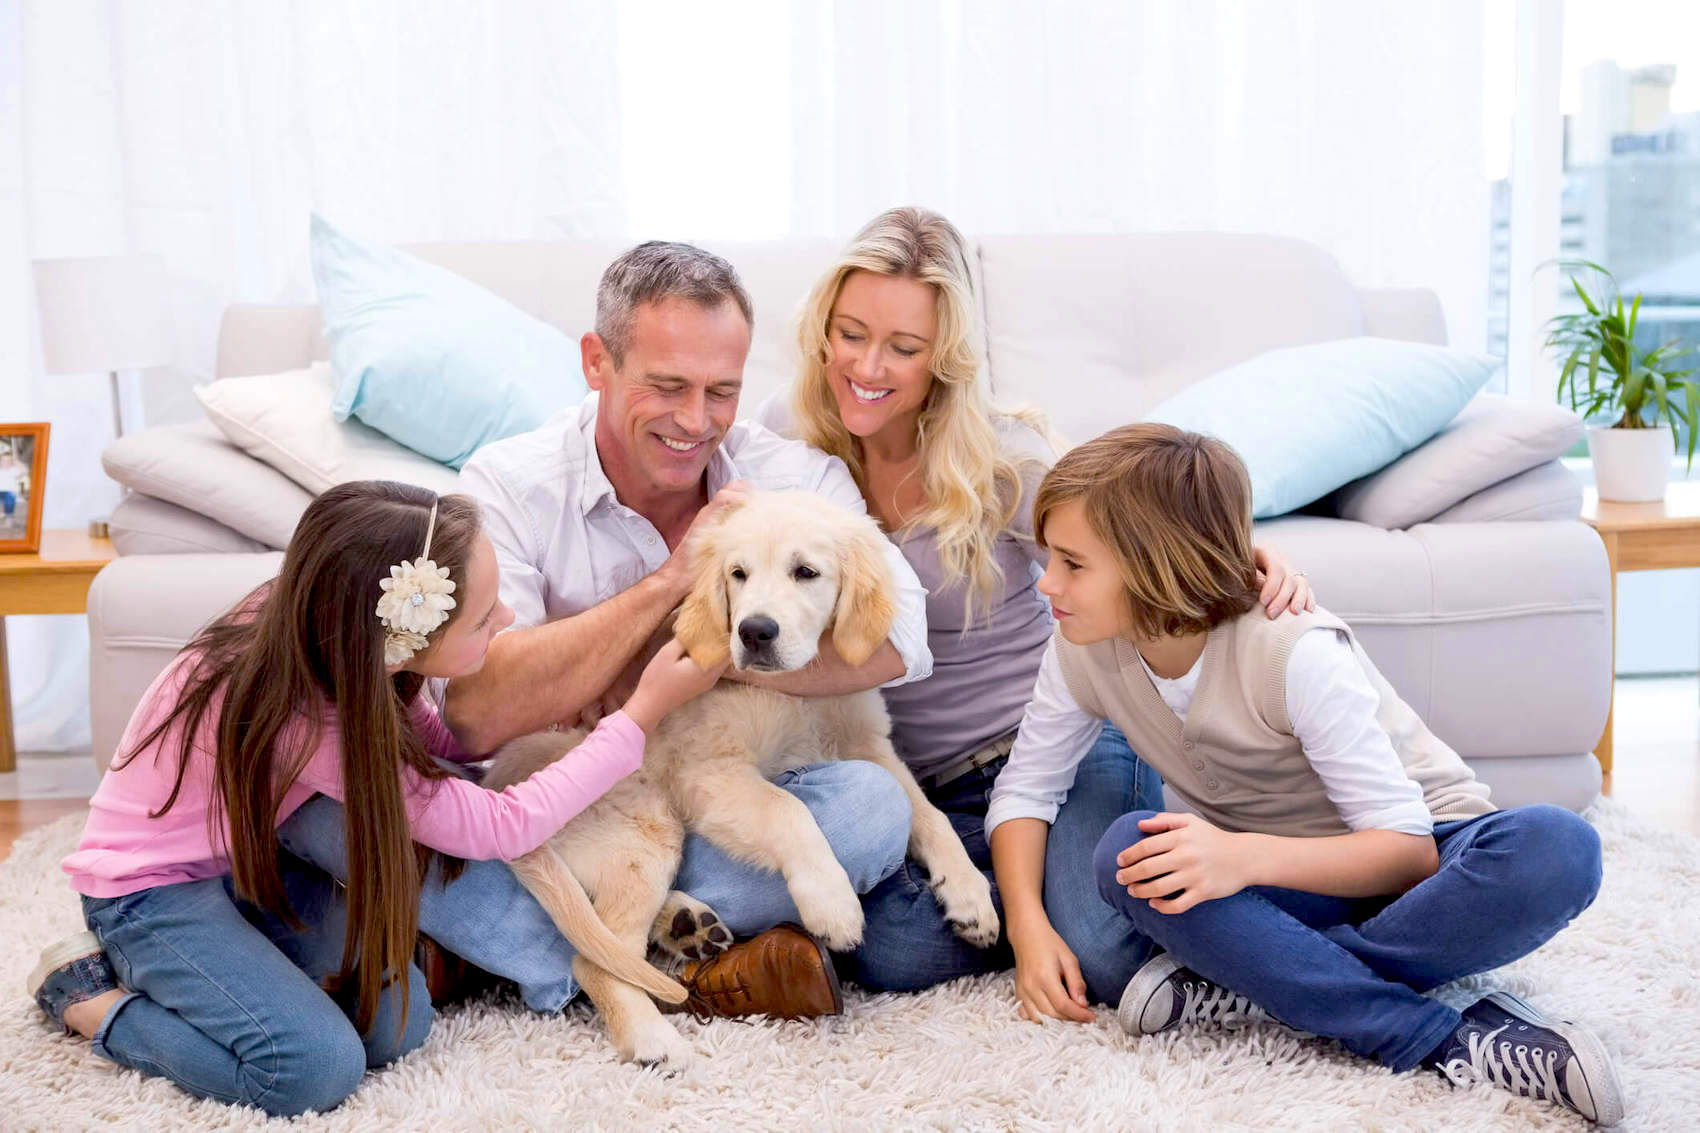 A family sitting around a golden retriever puppy in an air conditioned room.